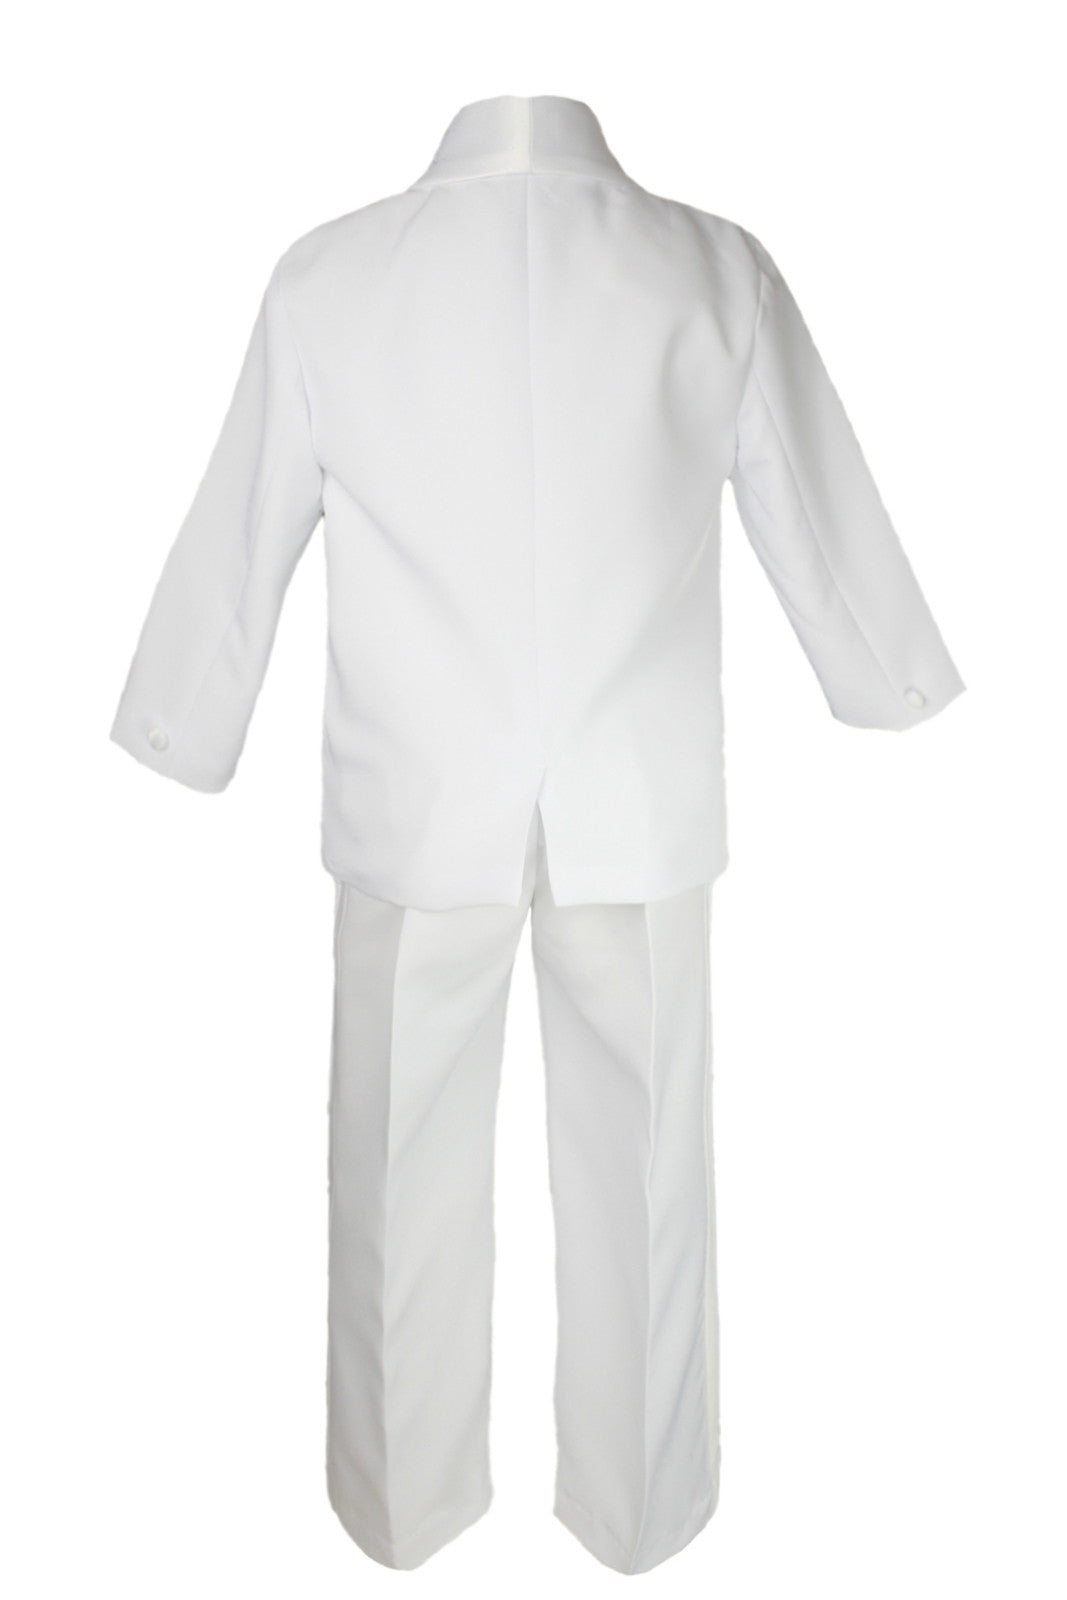 Baby Boy Baptism Formal White Suit Silver Virgin Mary on Stole /& Back Sm-20